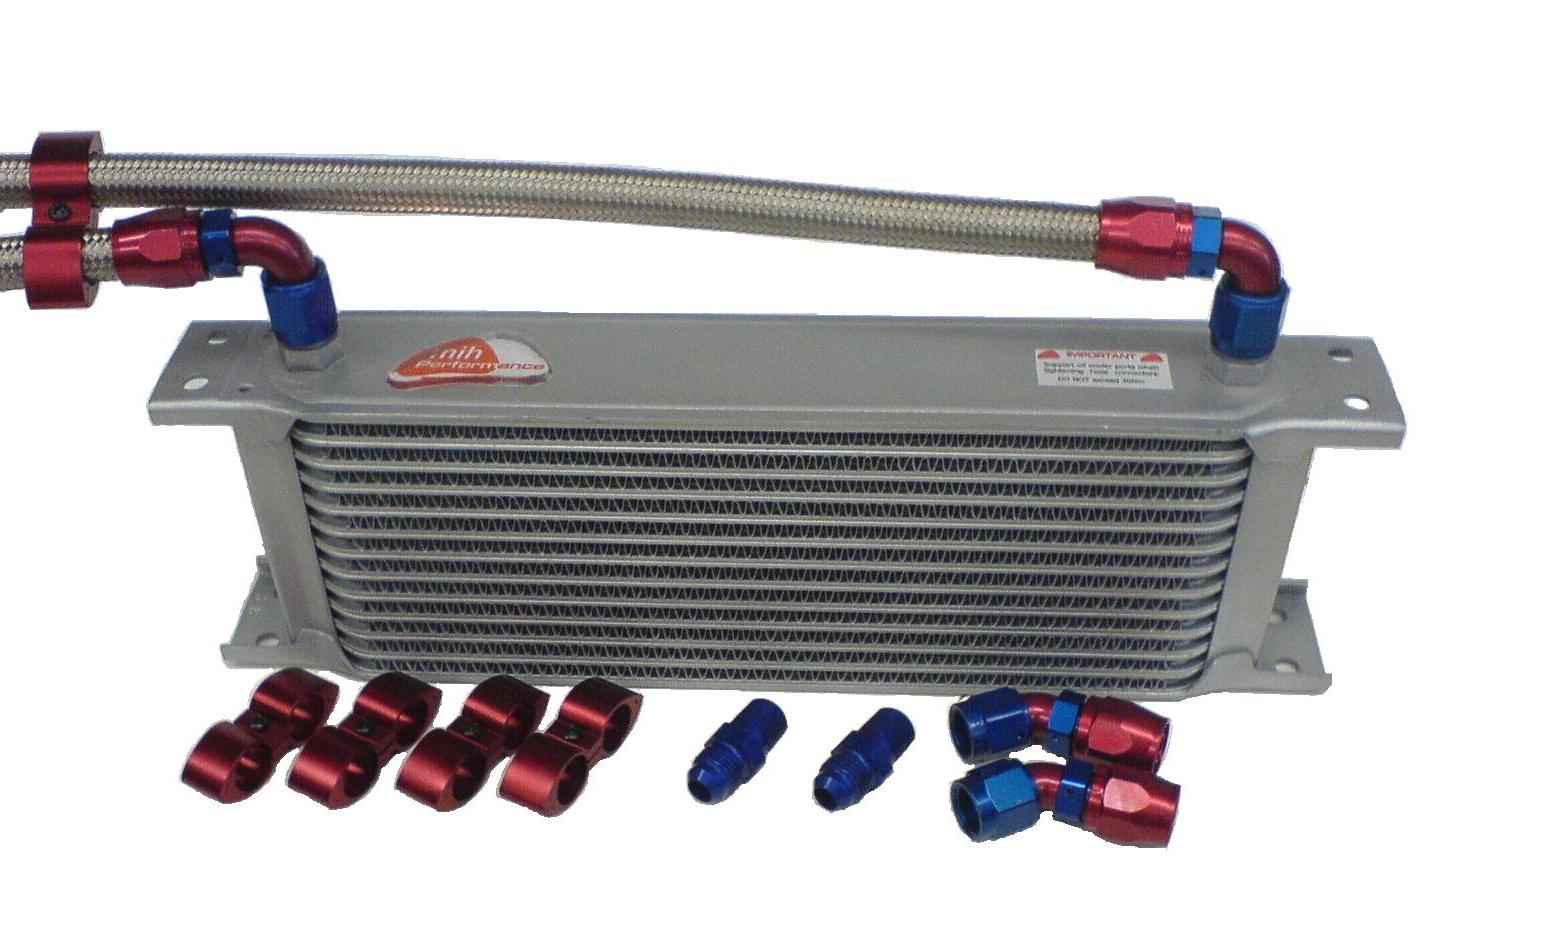 Transmission Fluid Cooler : Transmission oil cooler kit from speedflow